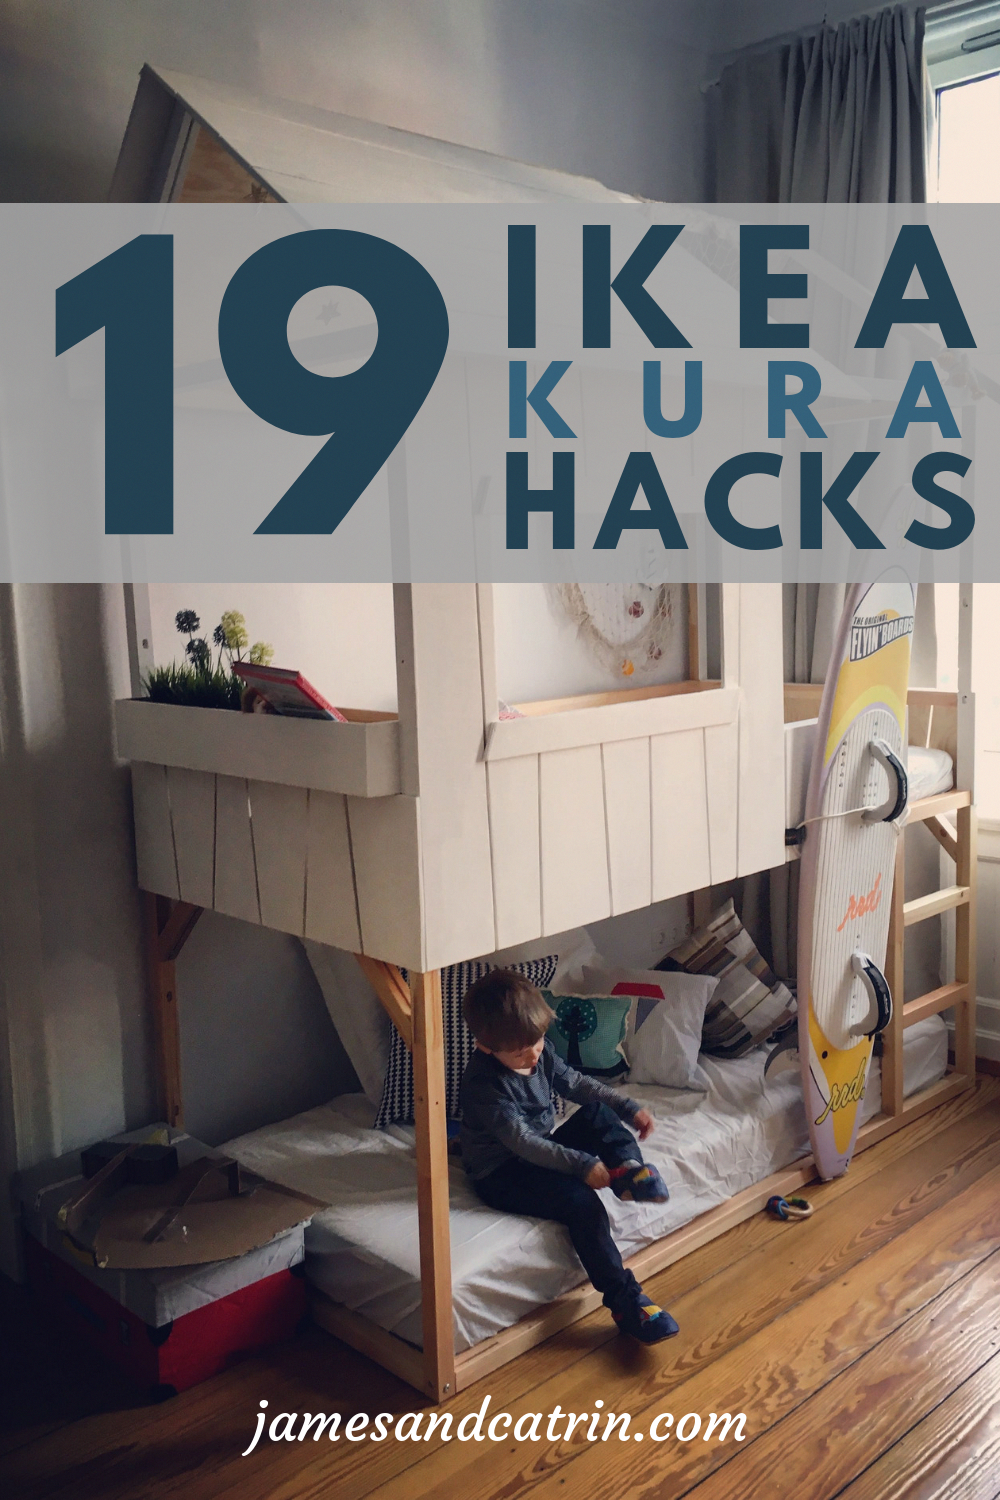 The versatile Ikea Kura bed can be hacked into so many